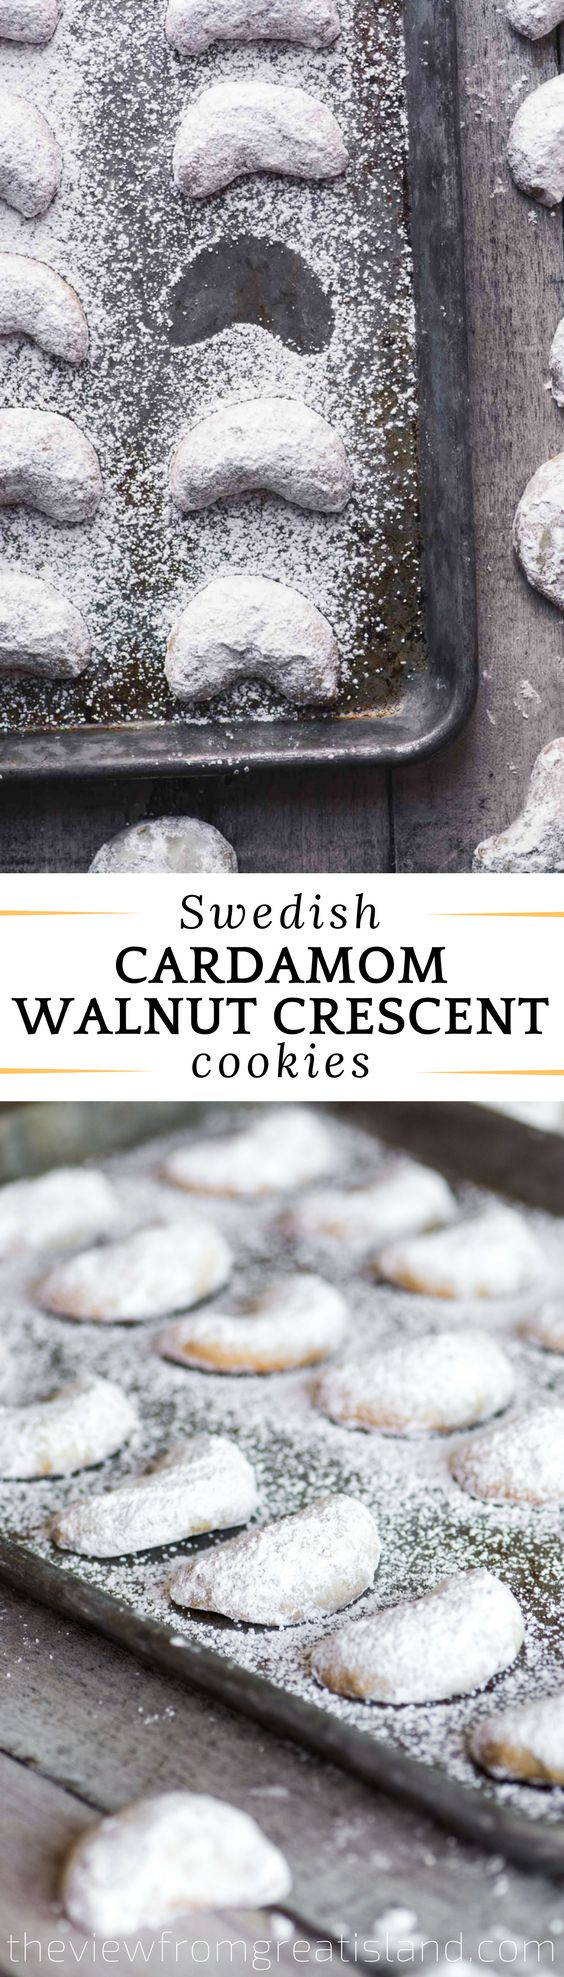 Cardamom Walnut Crescent Cookies ~ these classic Swedish Christmas cookies are made with a buttery shortbread dough jam packed with walnuts and a hint of warm cardamom. My oma used to make these #snowballcookies